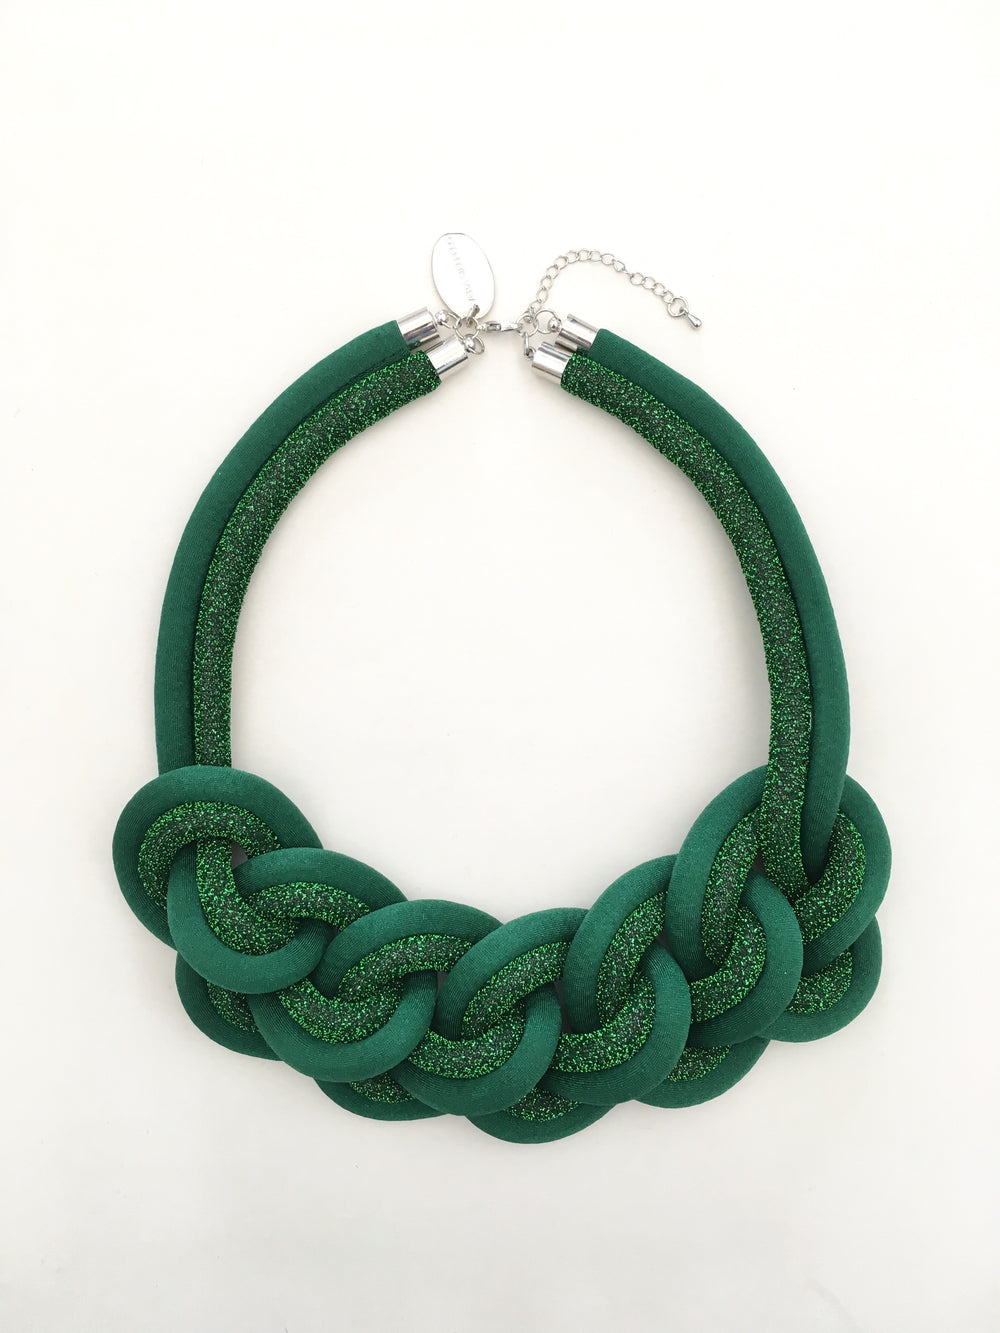 COLLAR CADENA DOBLE verde/verde lurex